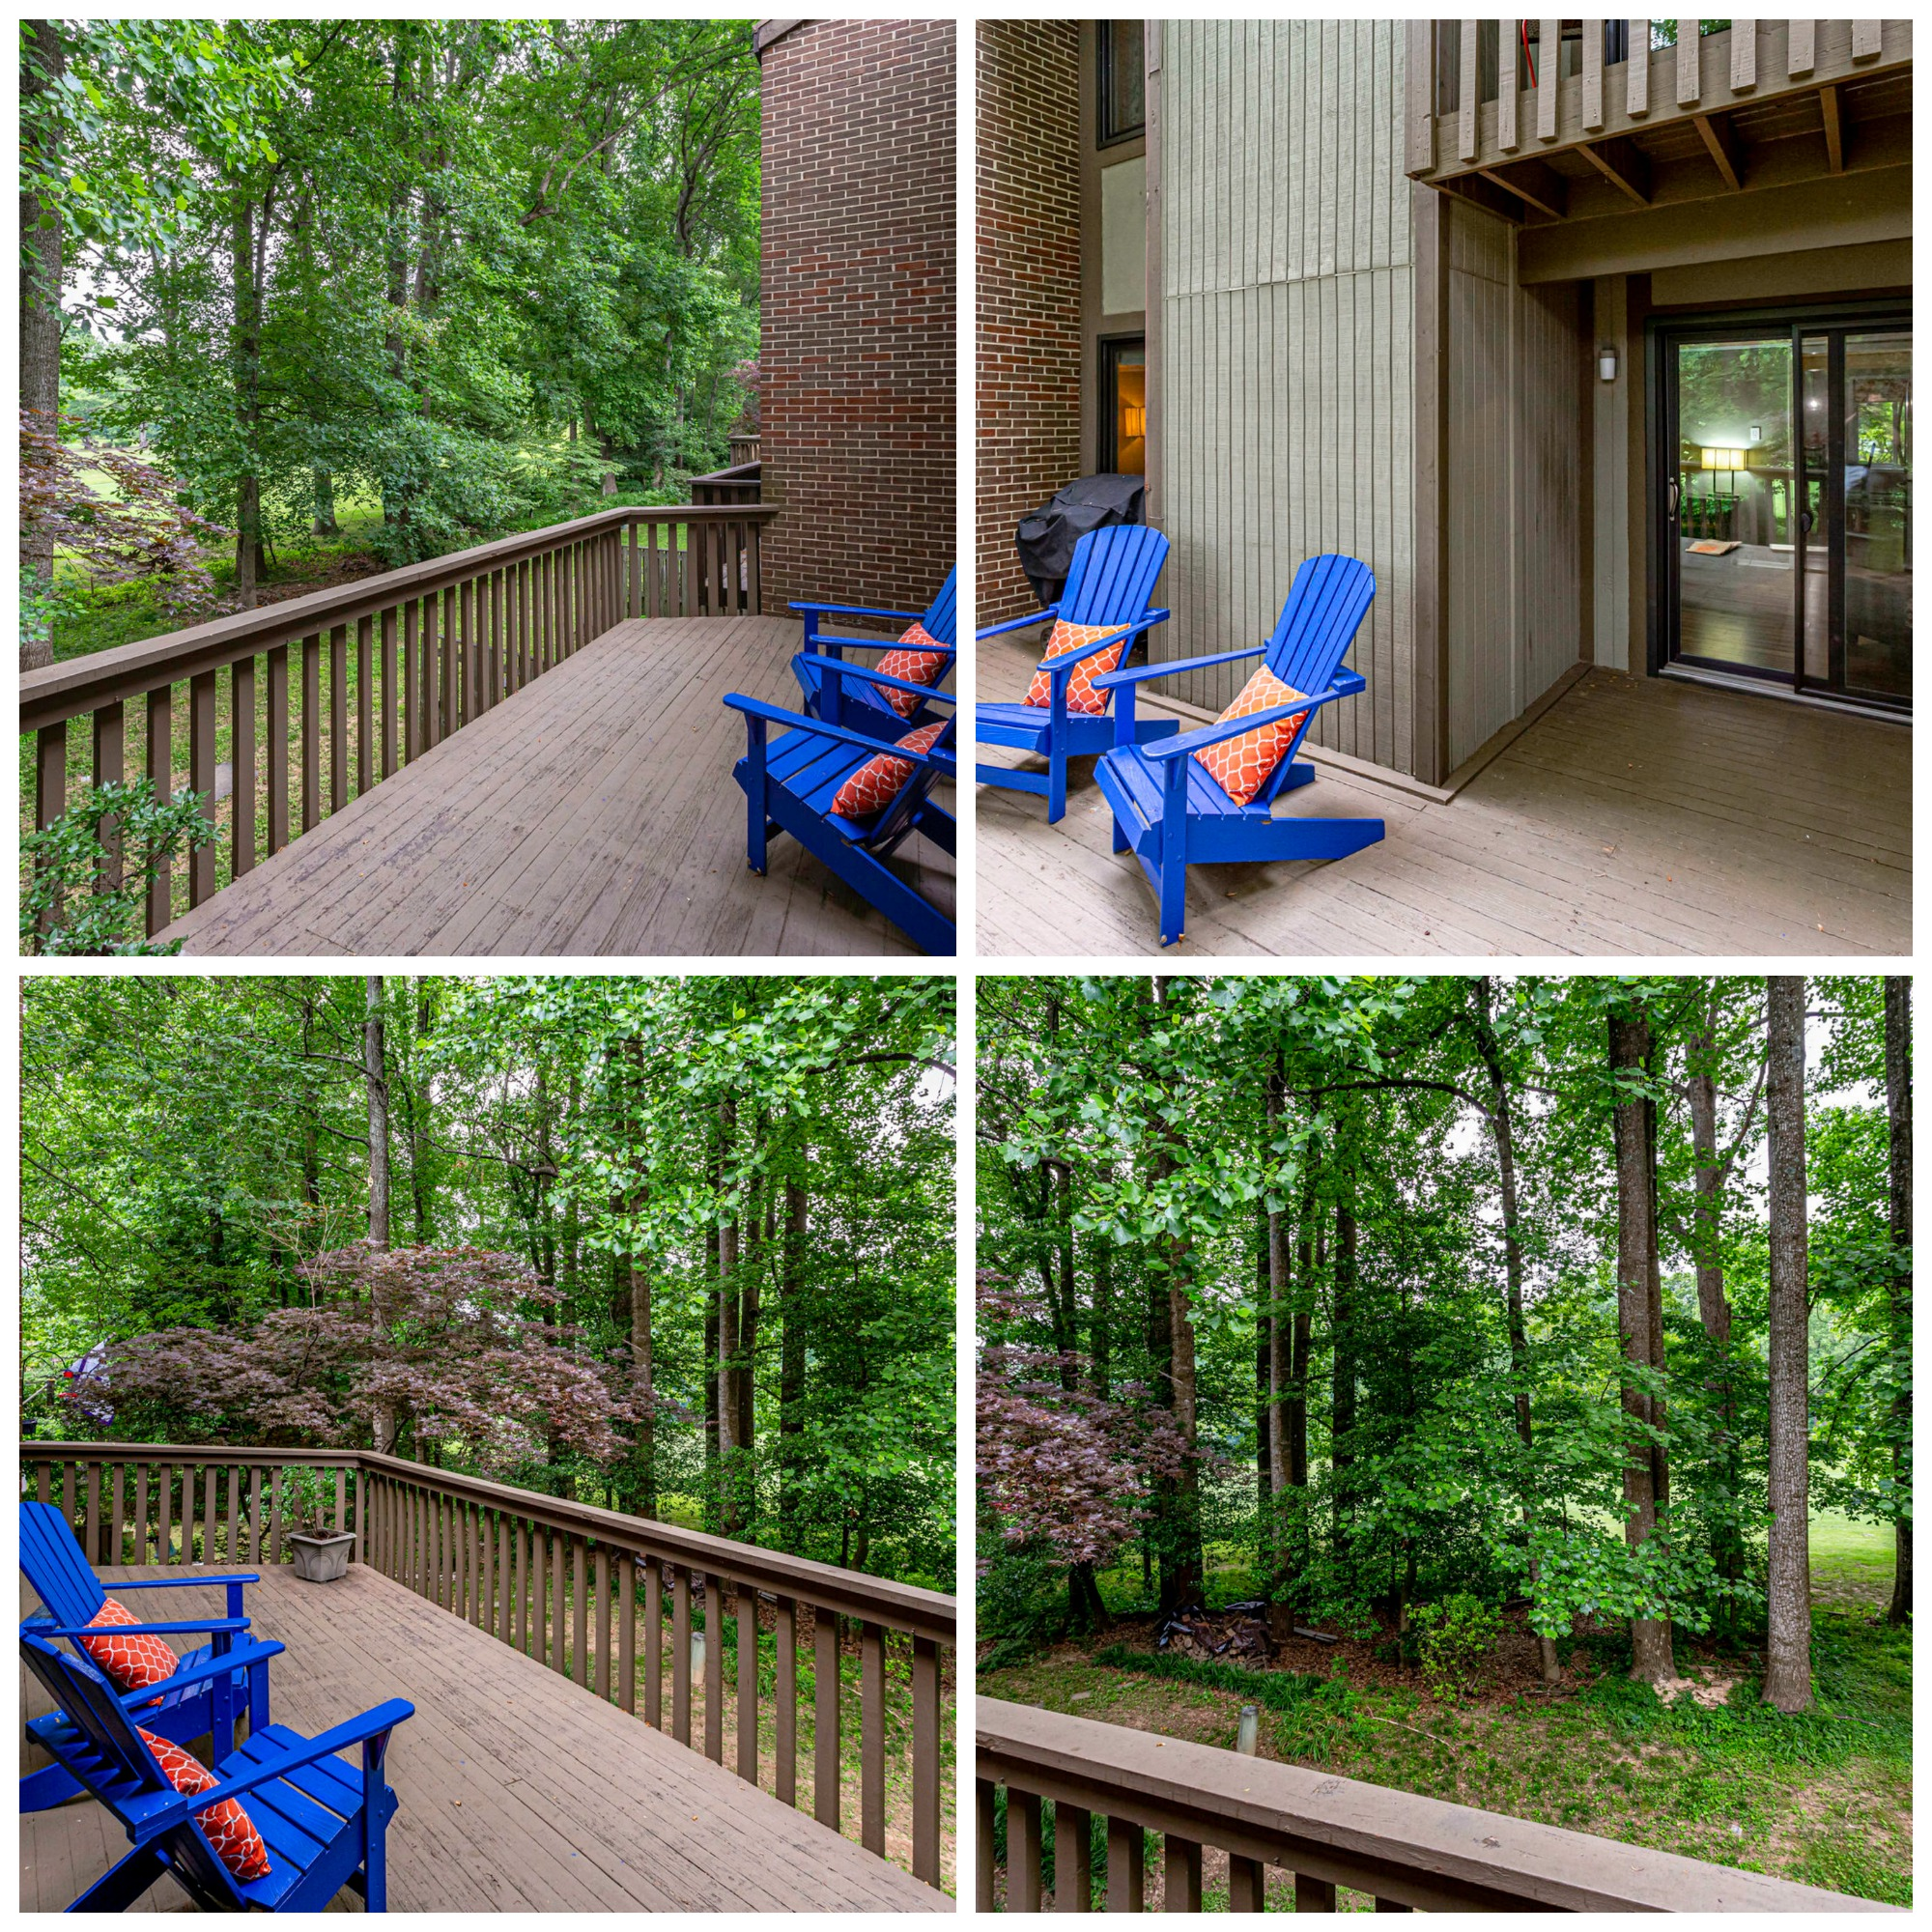 2160 Glencourse Ln, Reston- Main Level Deck